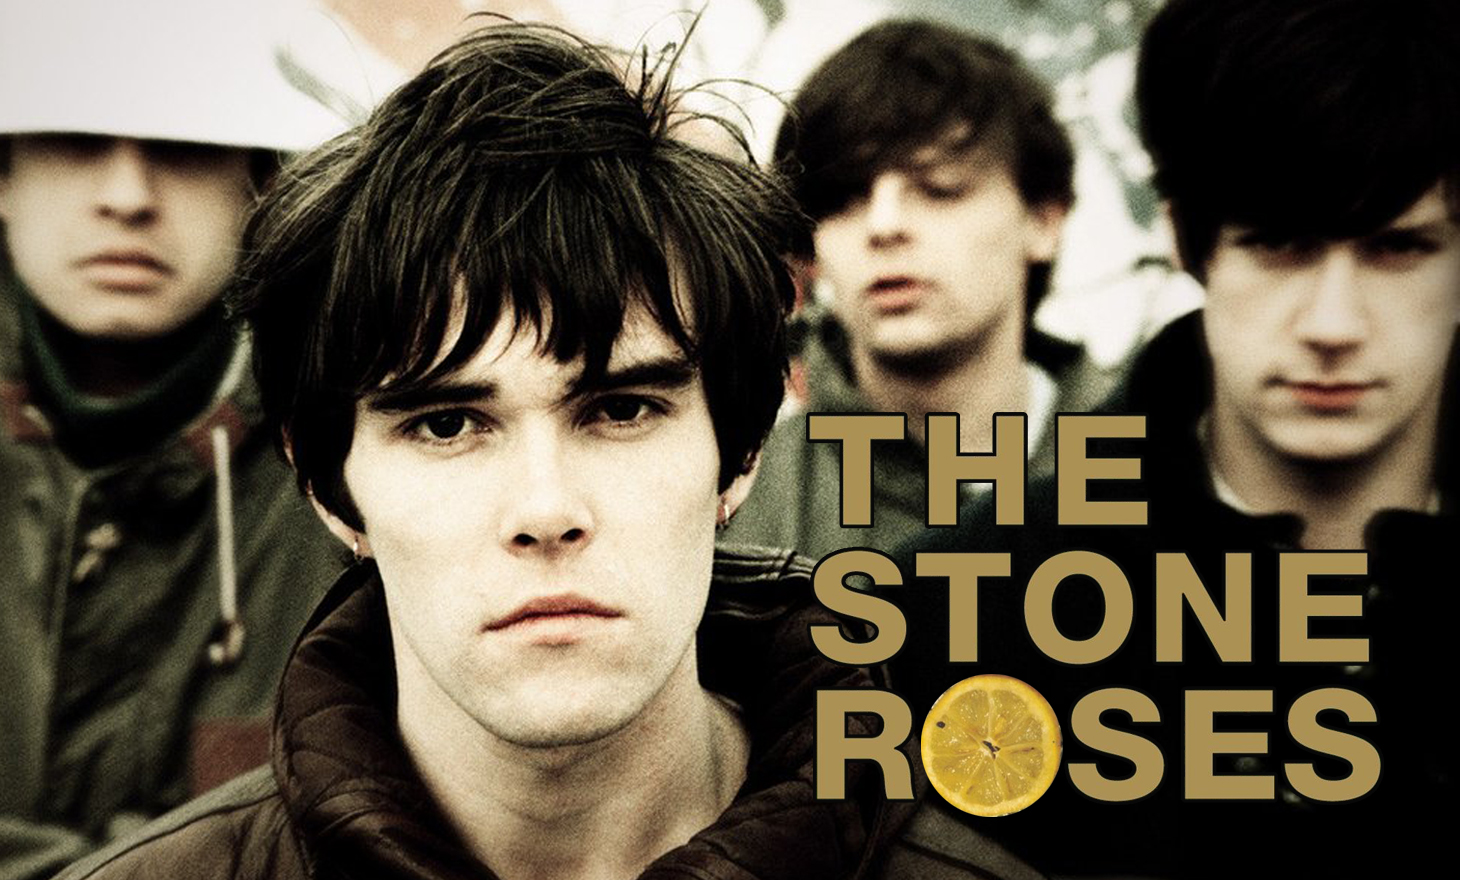 The Stone Roses(ザ・ストーン・ローゼズ):I Am the Resurrection